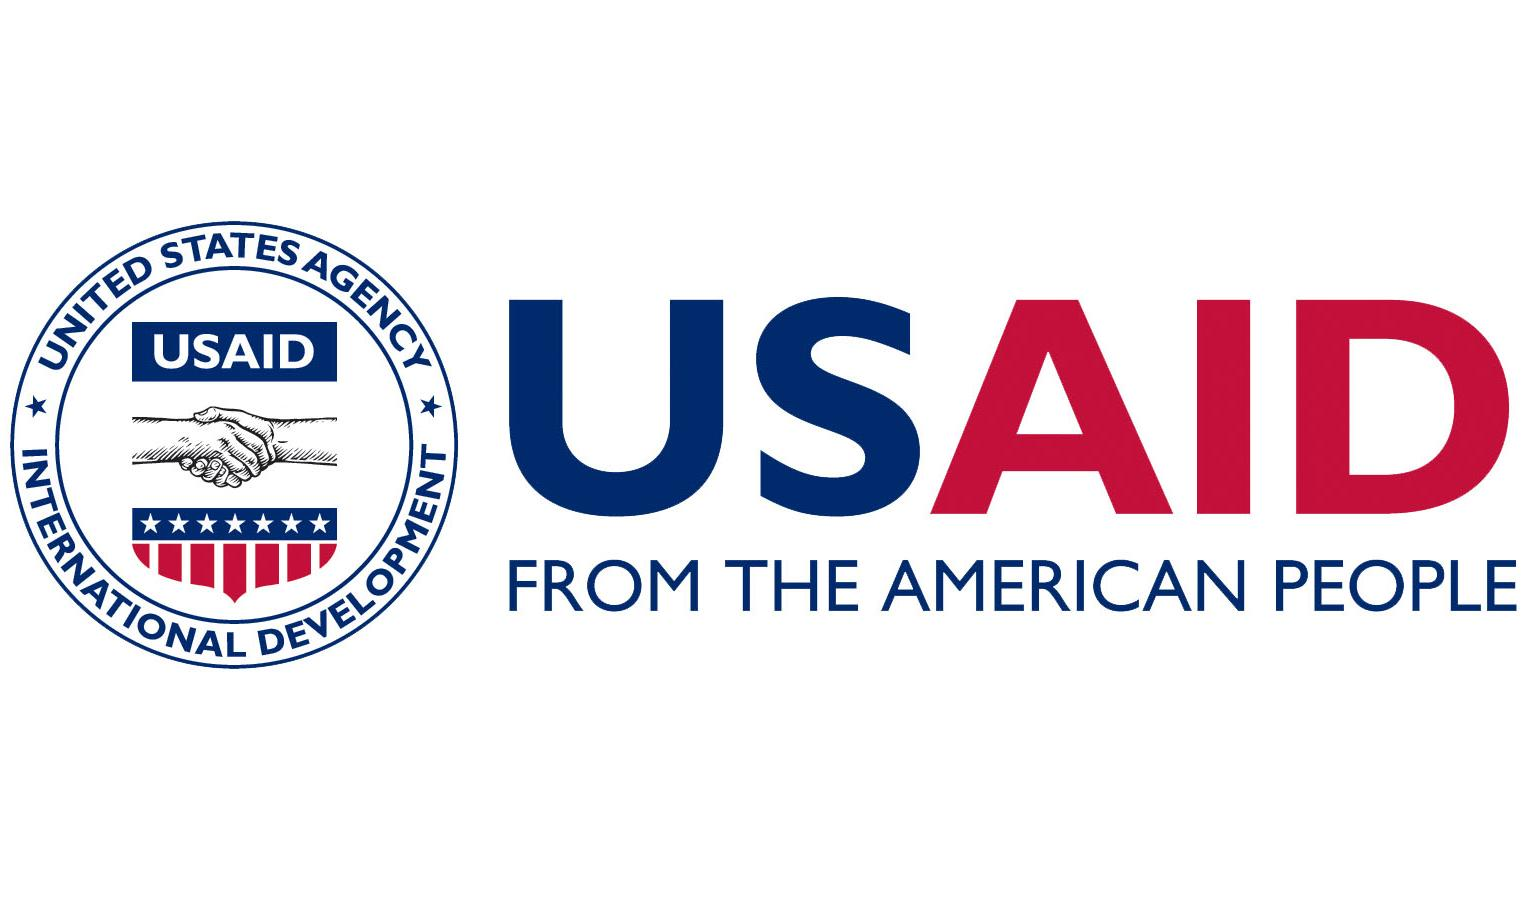 USAID (United State Agency for International Development)